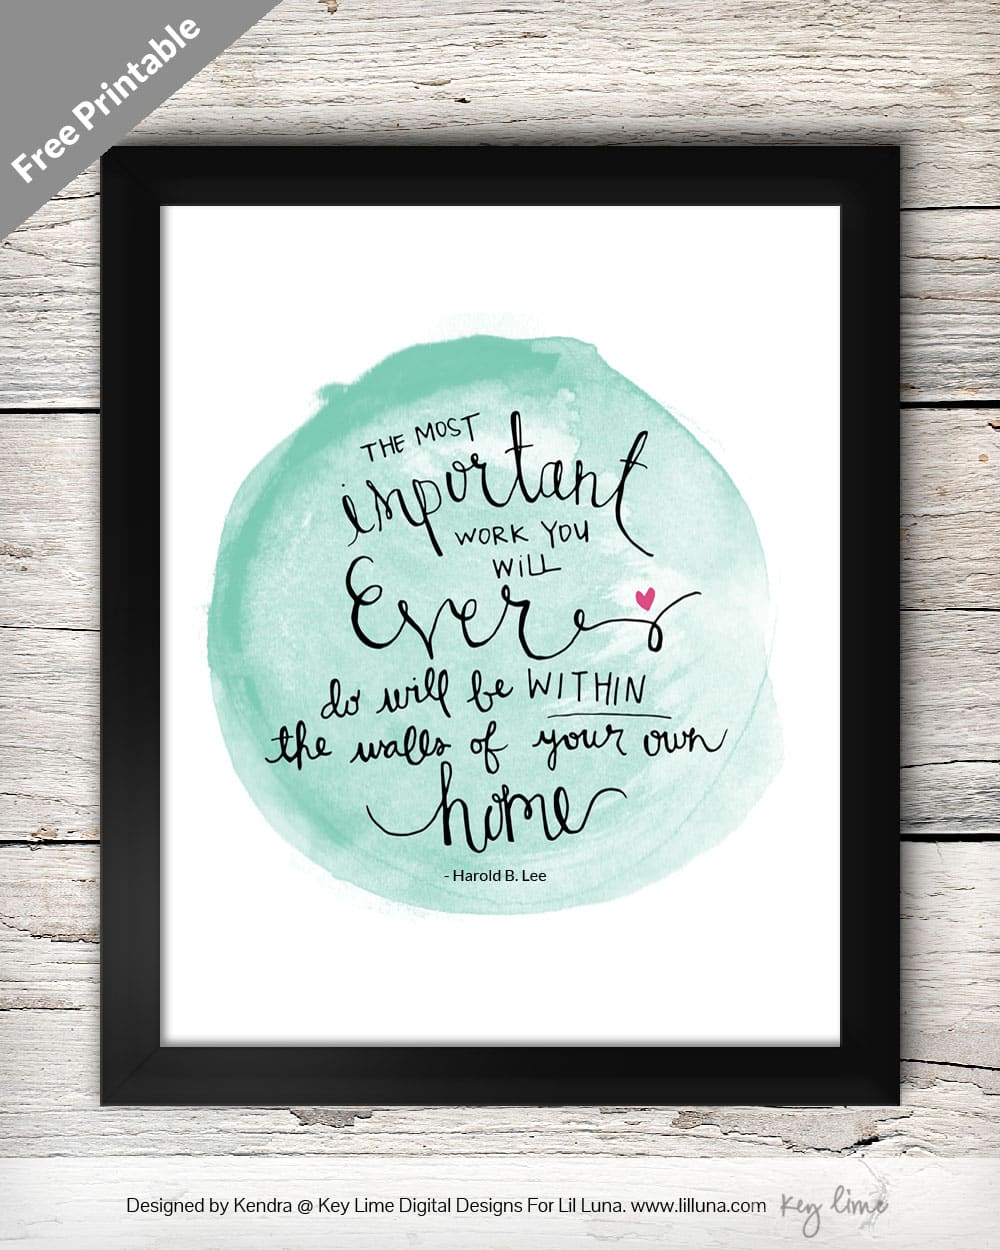 The Most Important Work You will ever do will be within the walls of your own home - LOVE this quote! Free print on { lilluna.com } Stick in a frame & use as decor or give as a gift!